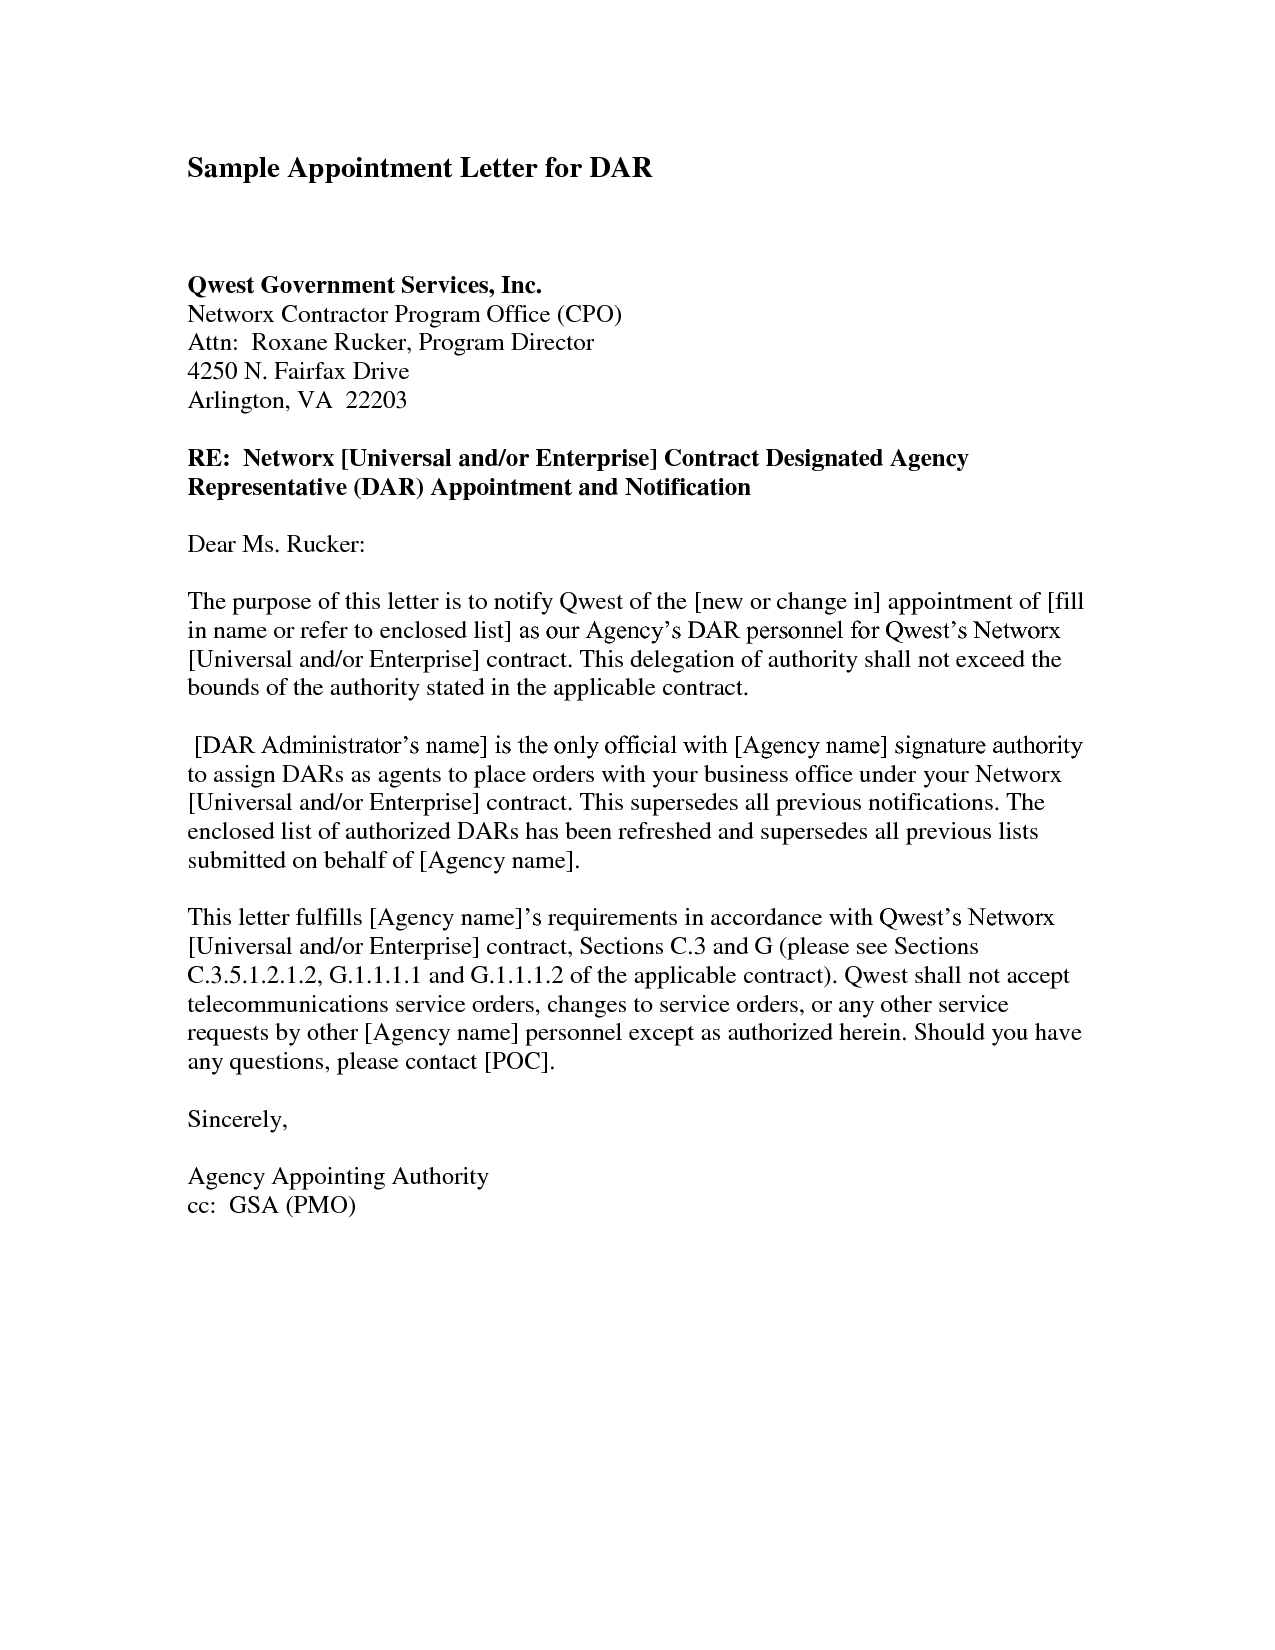 Cease and Desist Letter Template Business Name - Trustee Appointment Letter Director Trustee is Appointed or